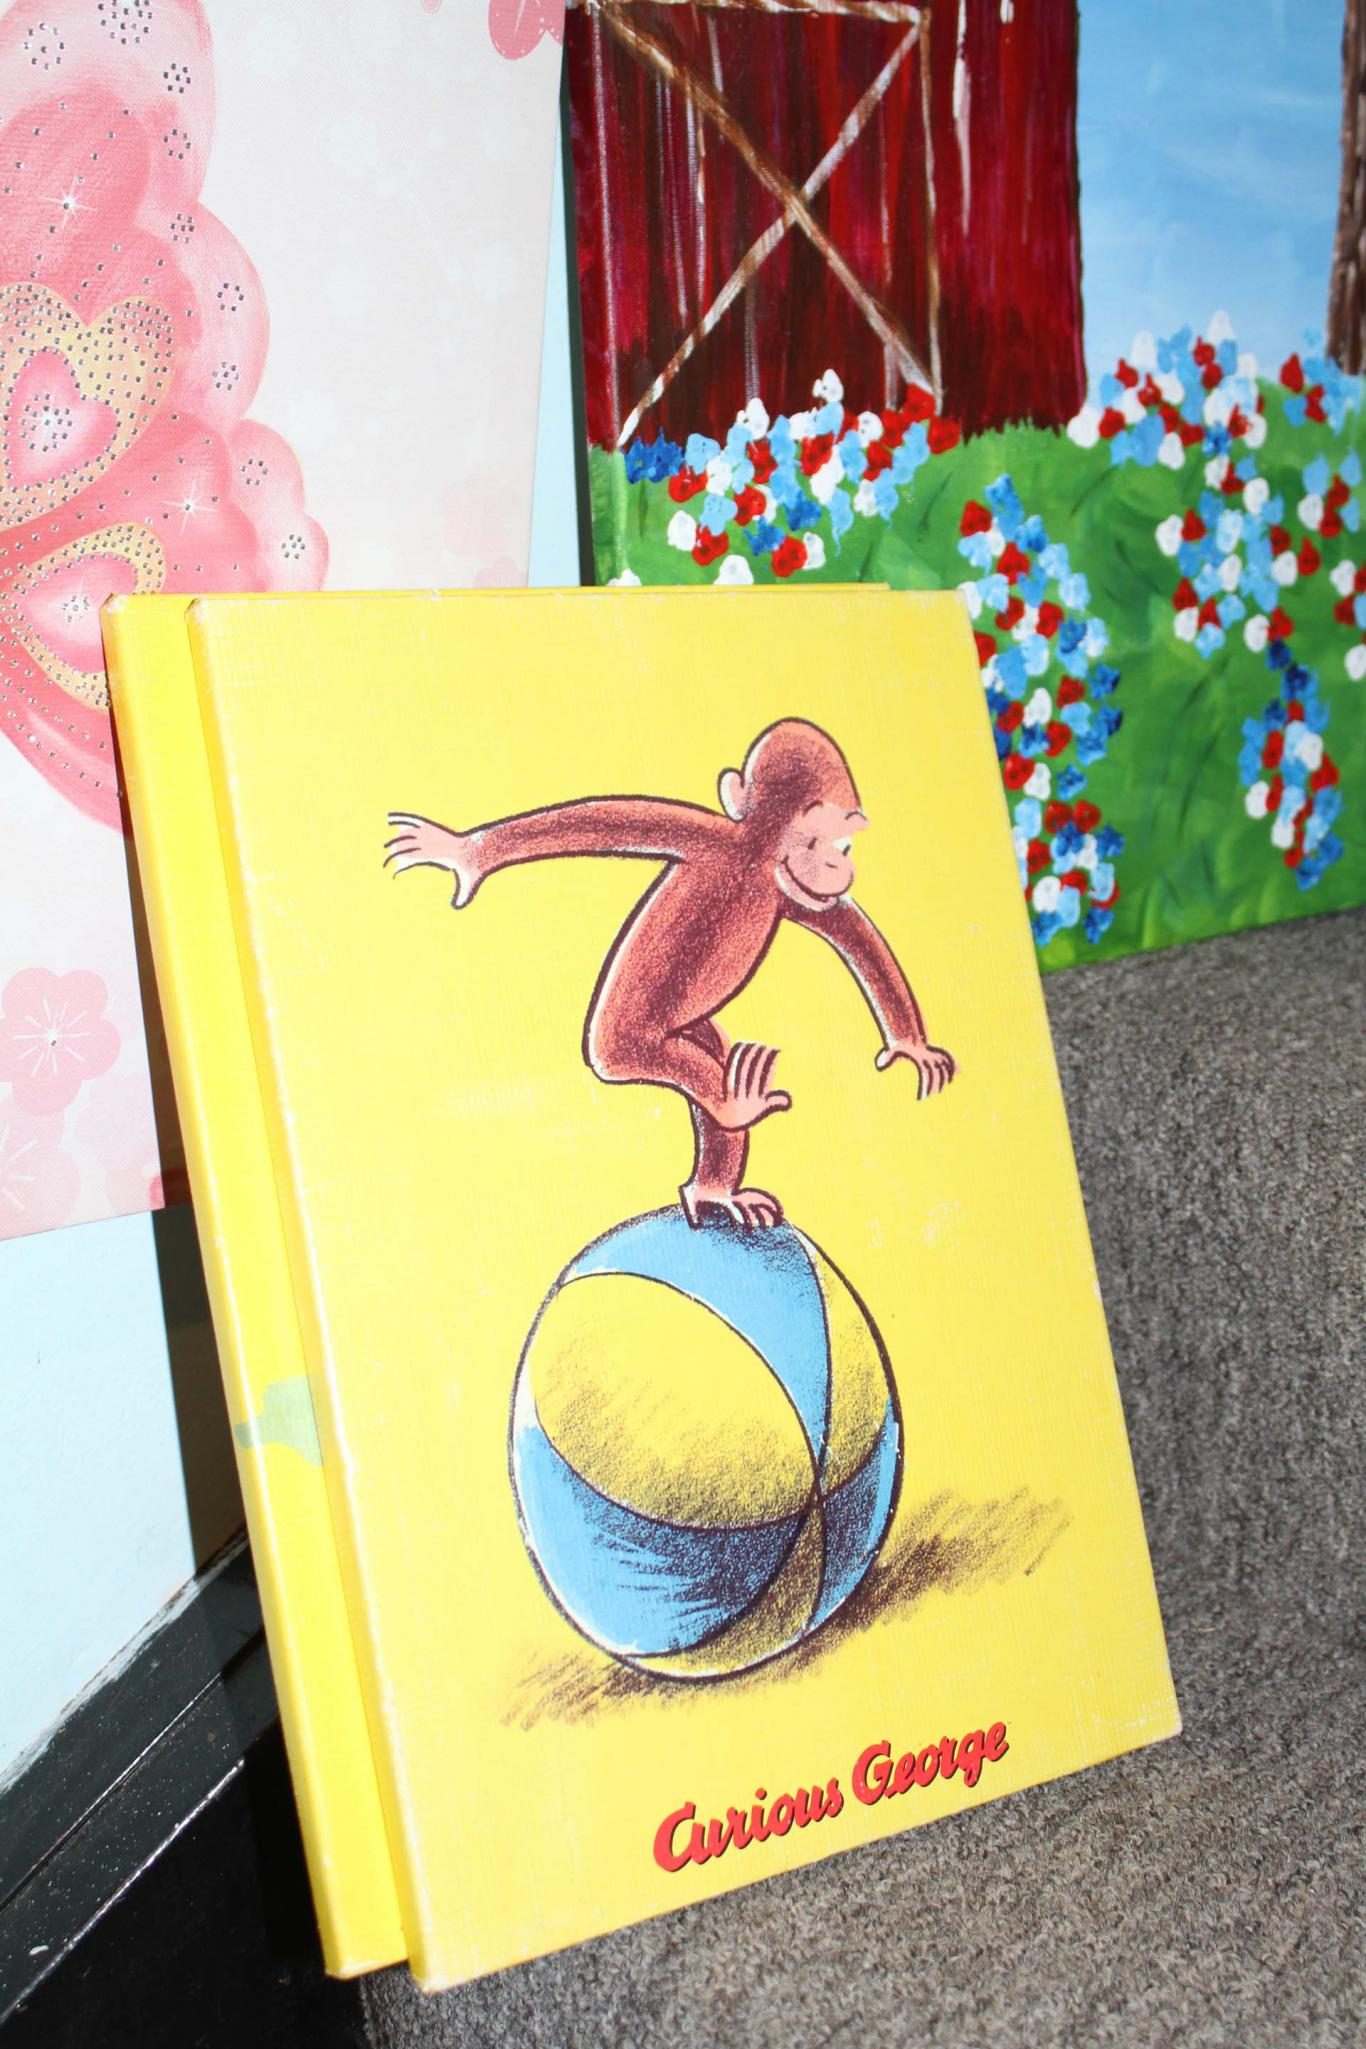 Curious George set of Three Wall Plaques canvas pictures